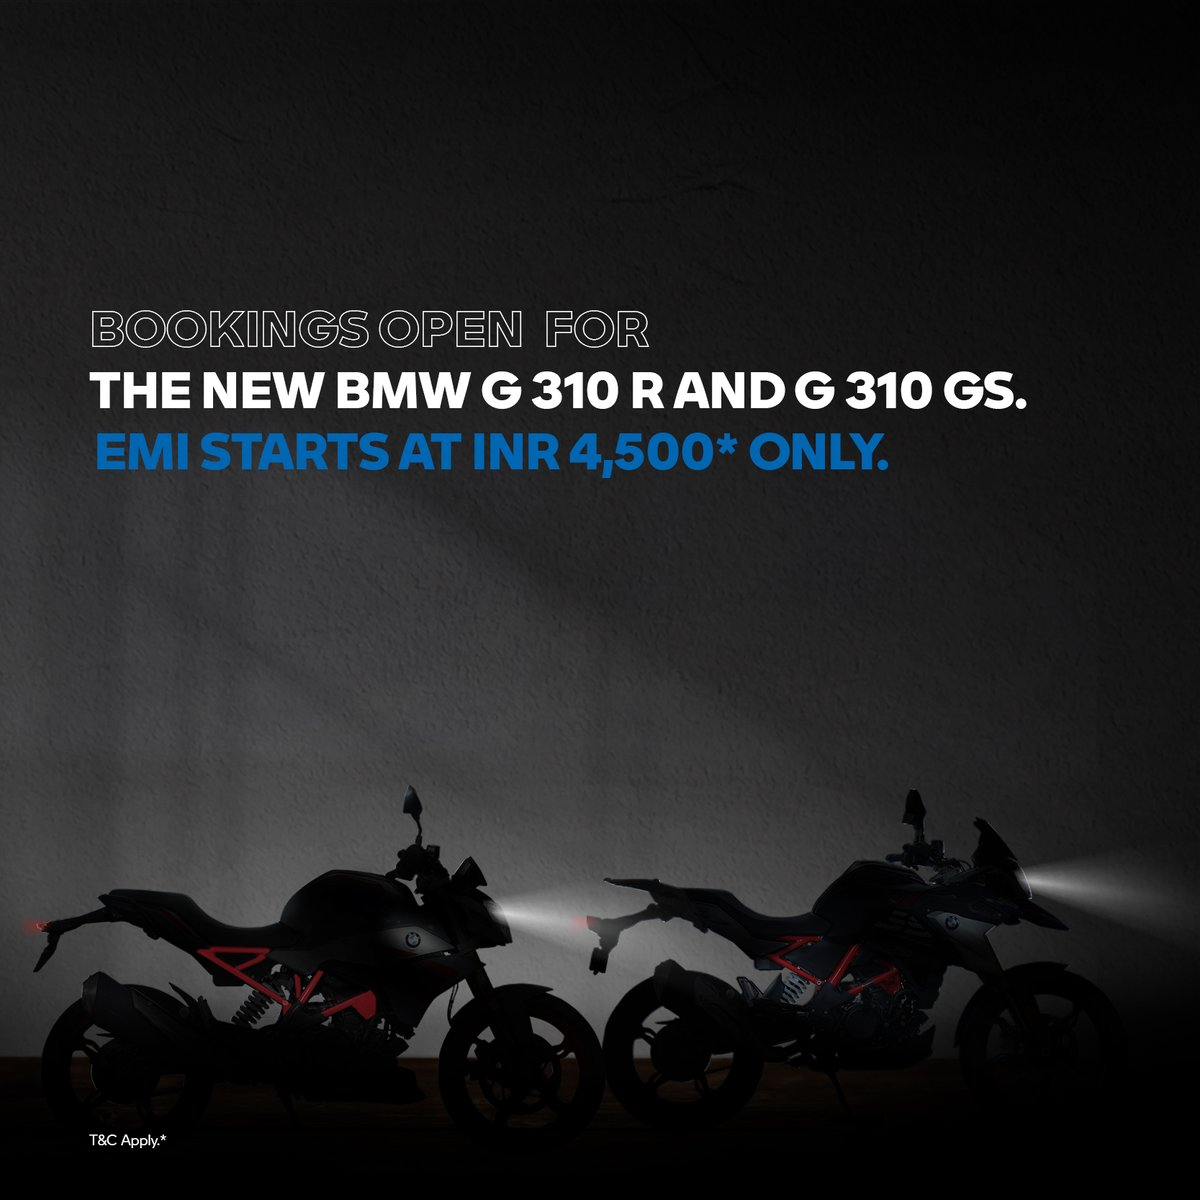 The talk of the town is back in its new avatar. It is refined, renewed, and re-energised. Book yours today by contacting your nearest authorised BMW Motorrad dealership or click here - https://t.co/bJX2PnbbQ8 https://t.co/4RZvf2V6xb